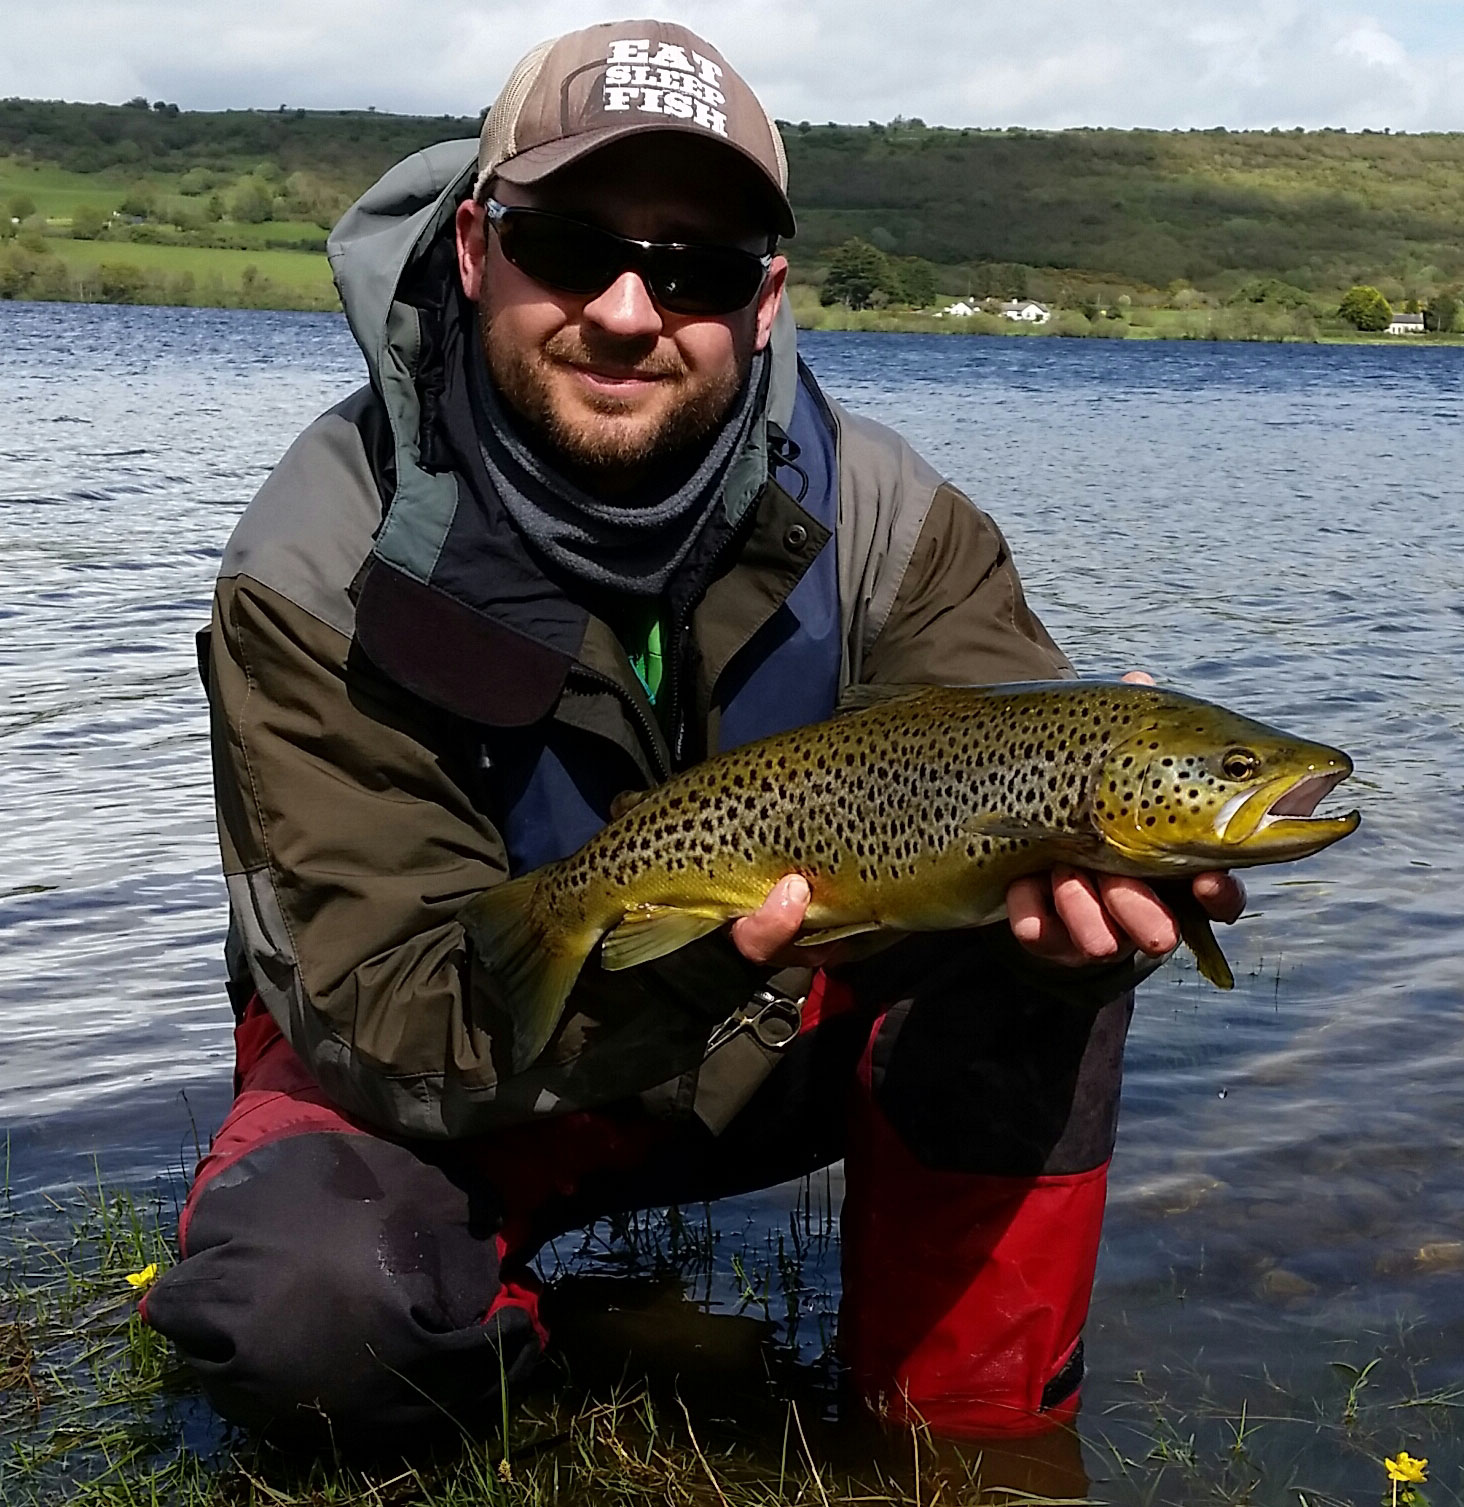 Tomasz_Paluszkiewicz_Sligo_with_a_5_lbs_Lough_Arrow_beauty.jpg